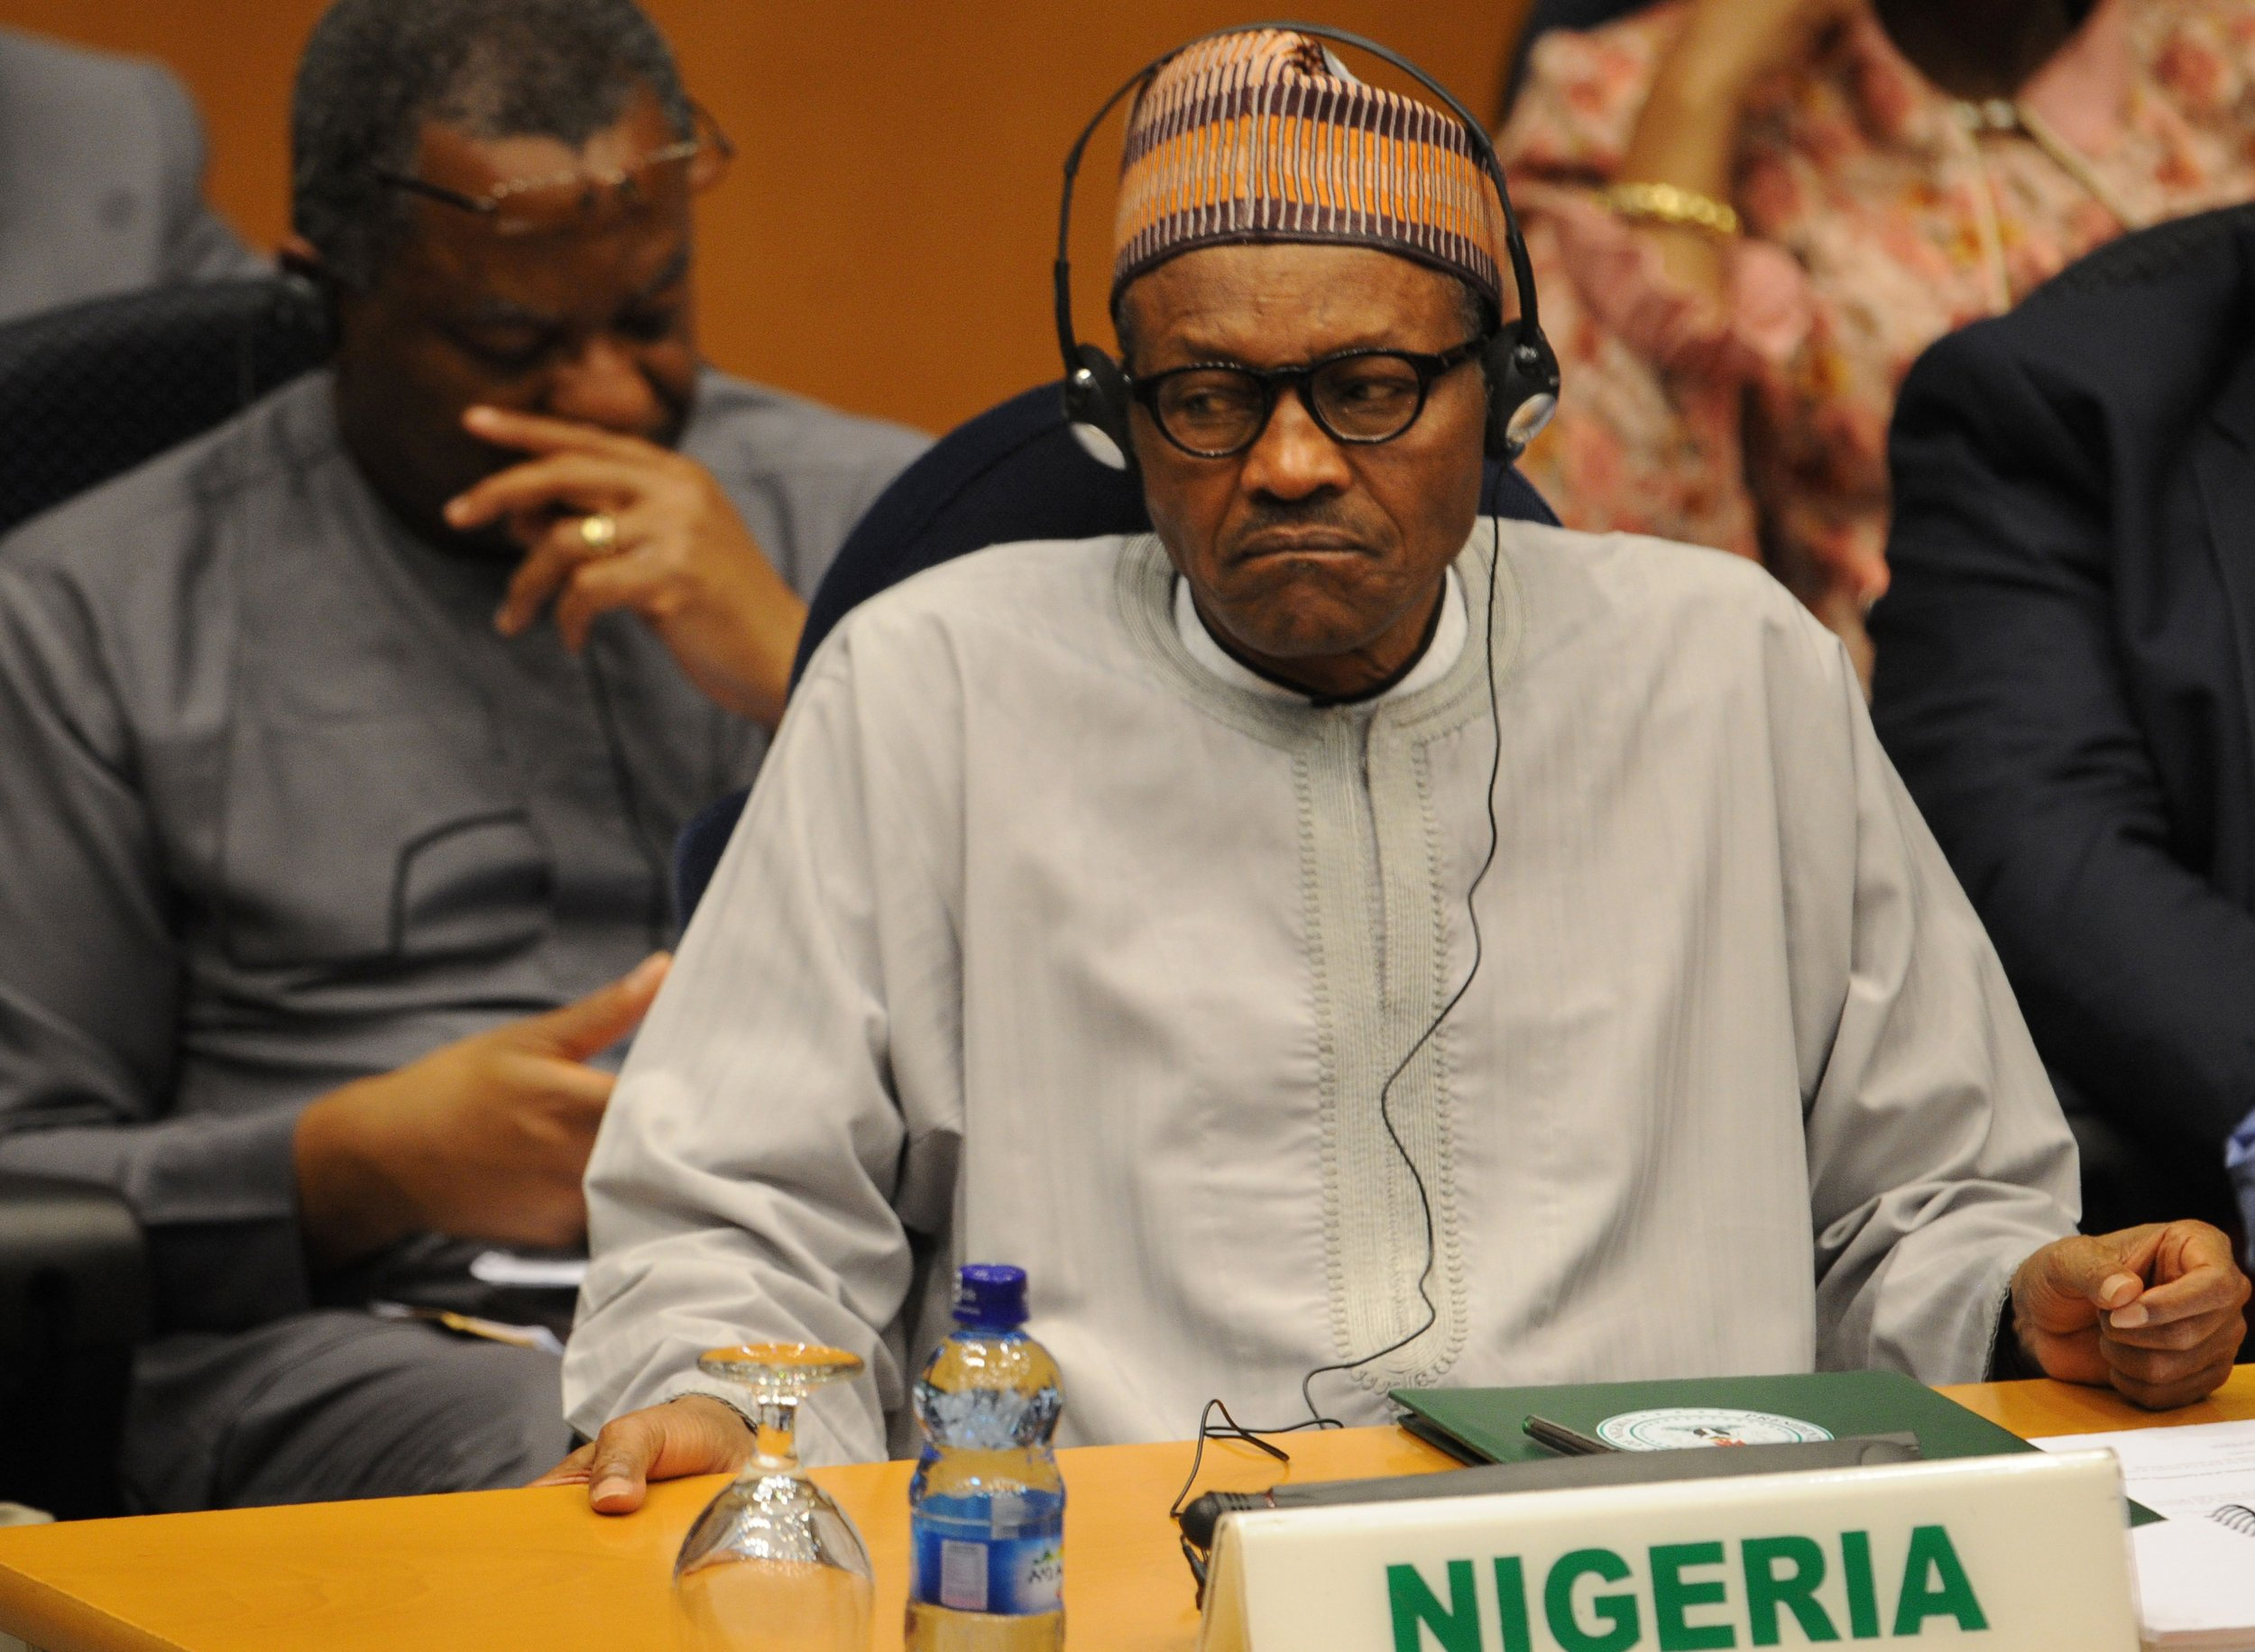 Nigerian President Muhammadu Buhari at an AU meeting in Ethiopia.